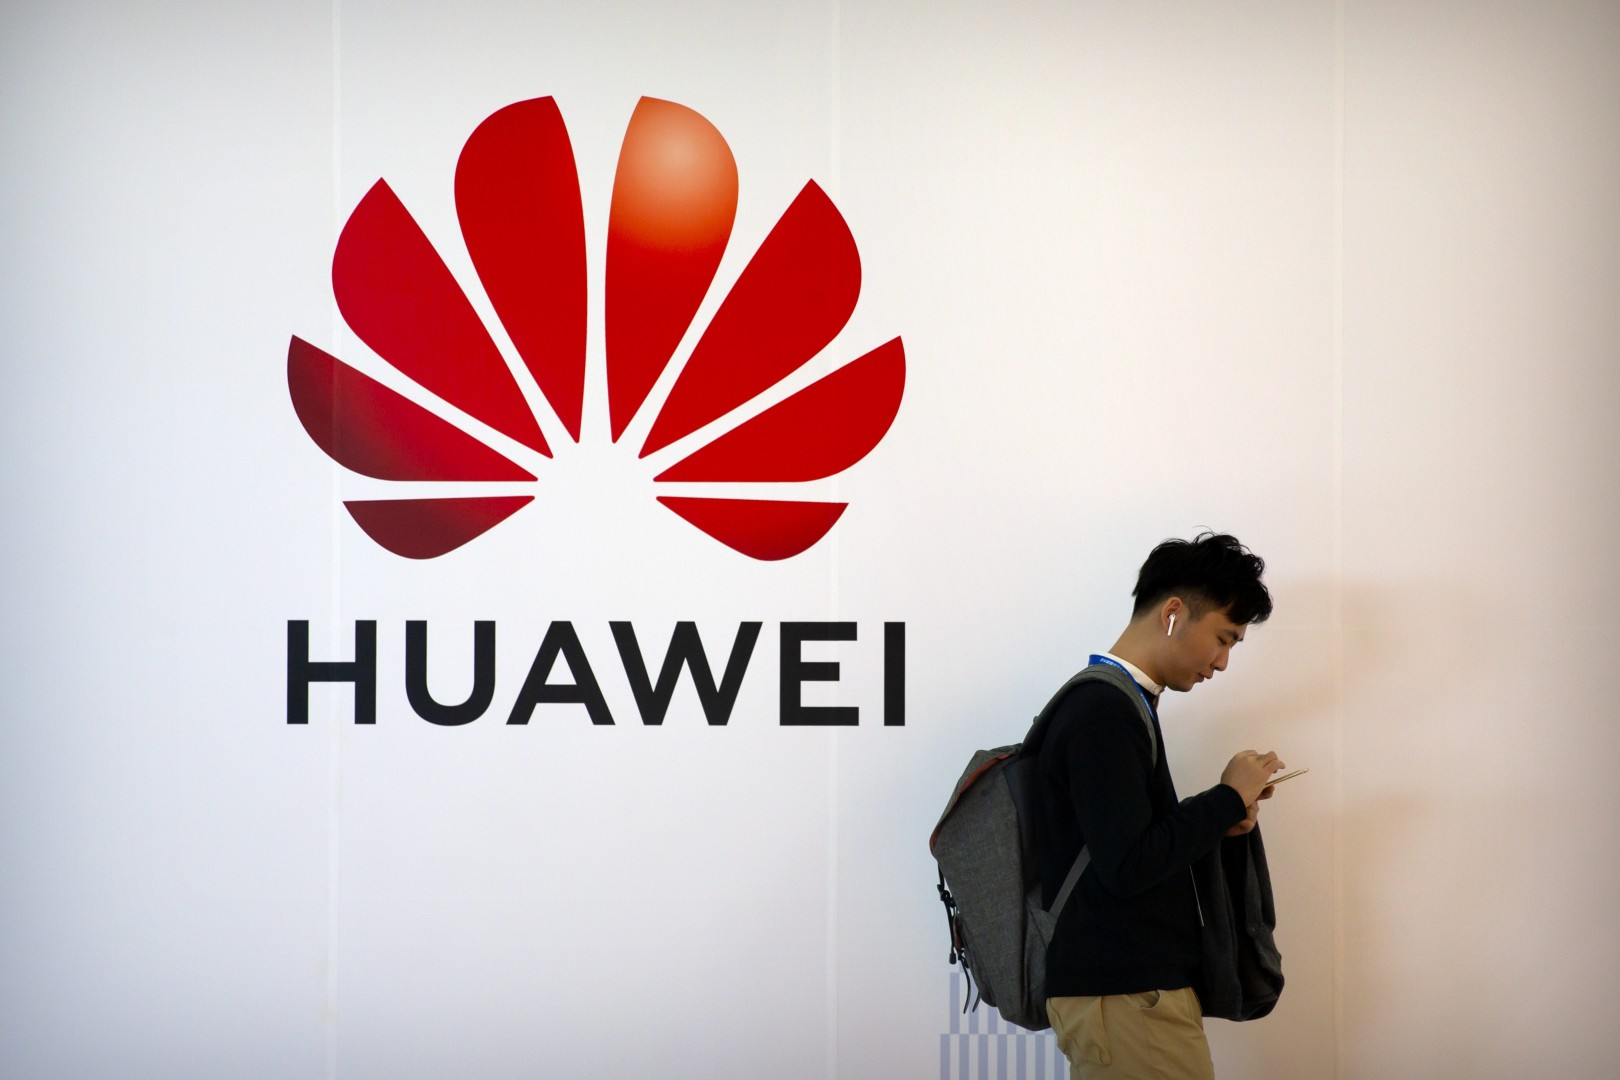 Huawei and US firms to work together on 5G standards